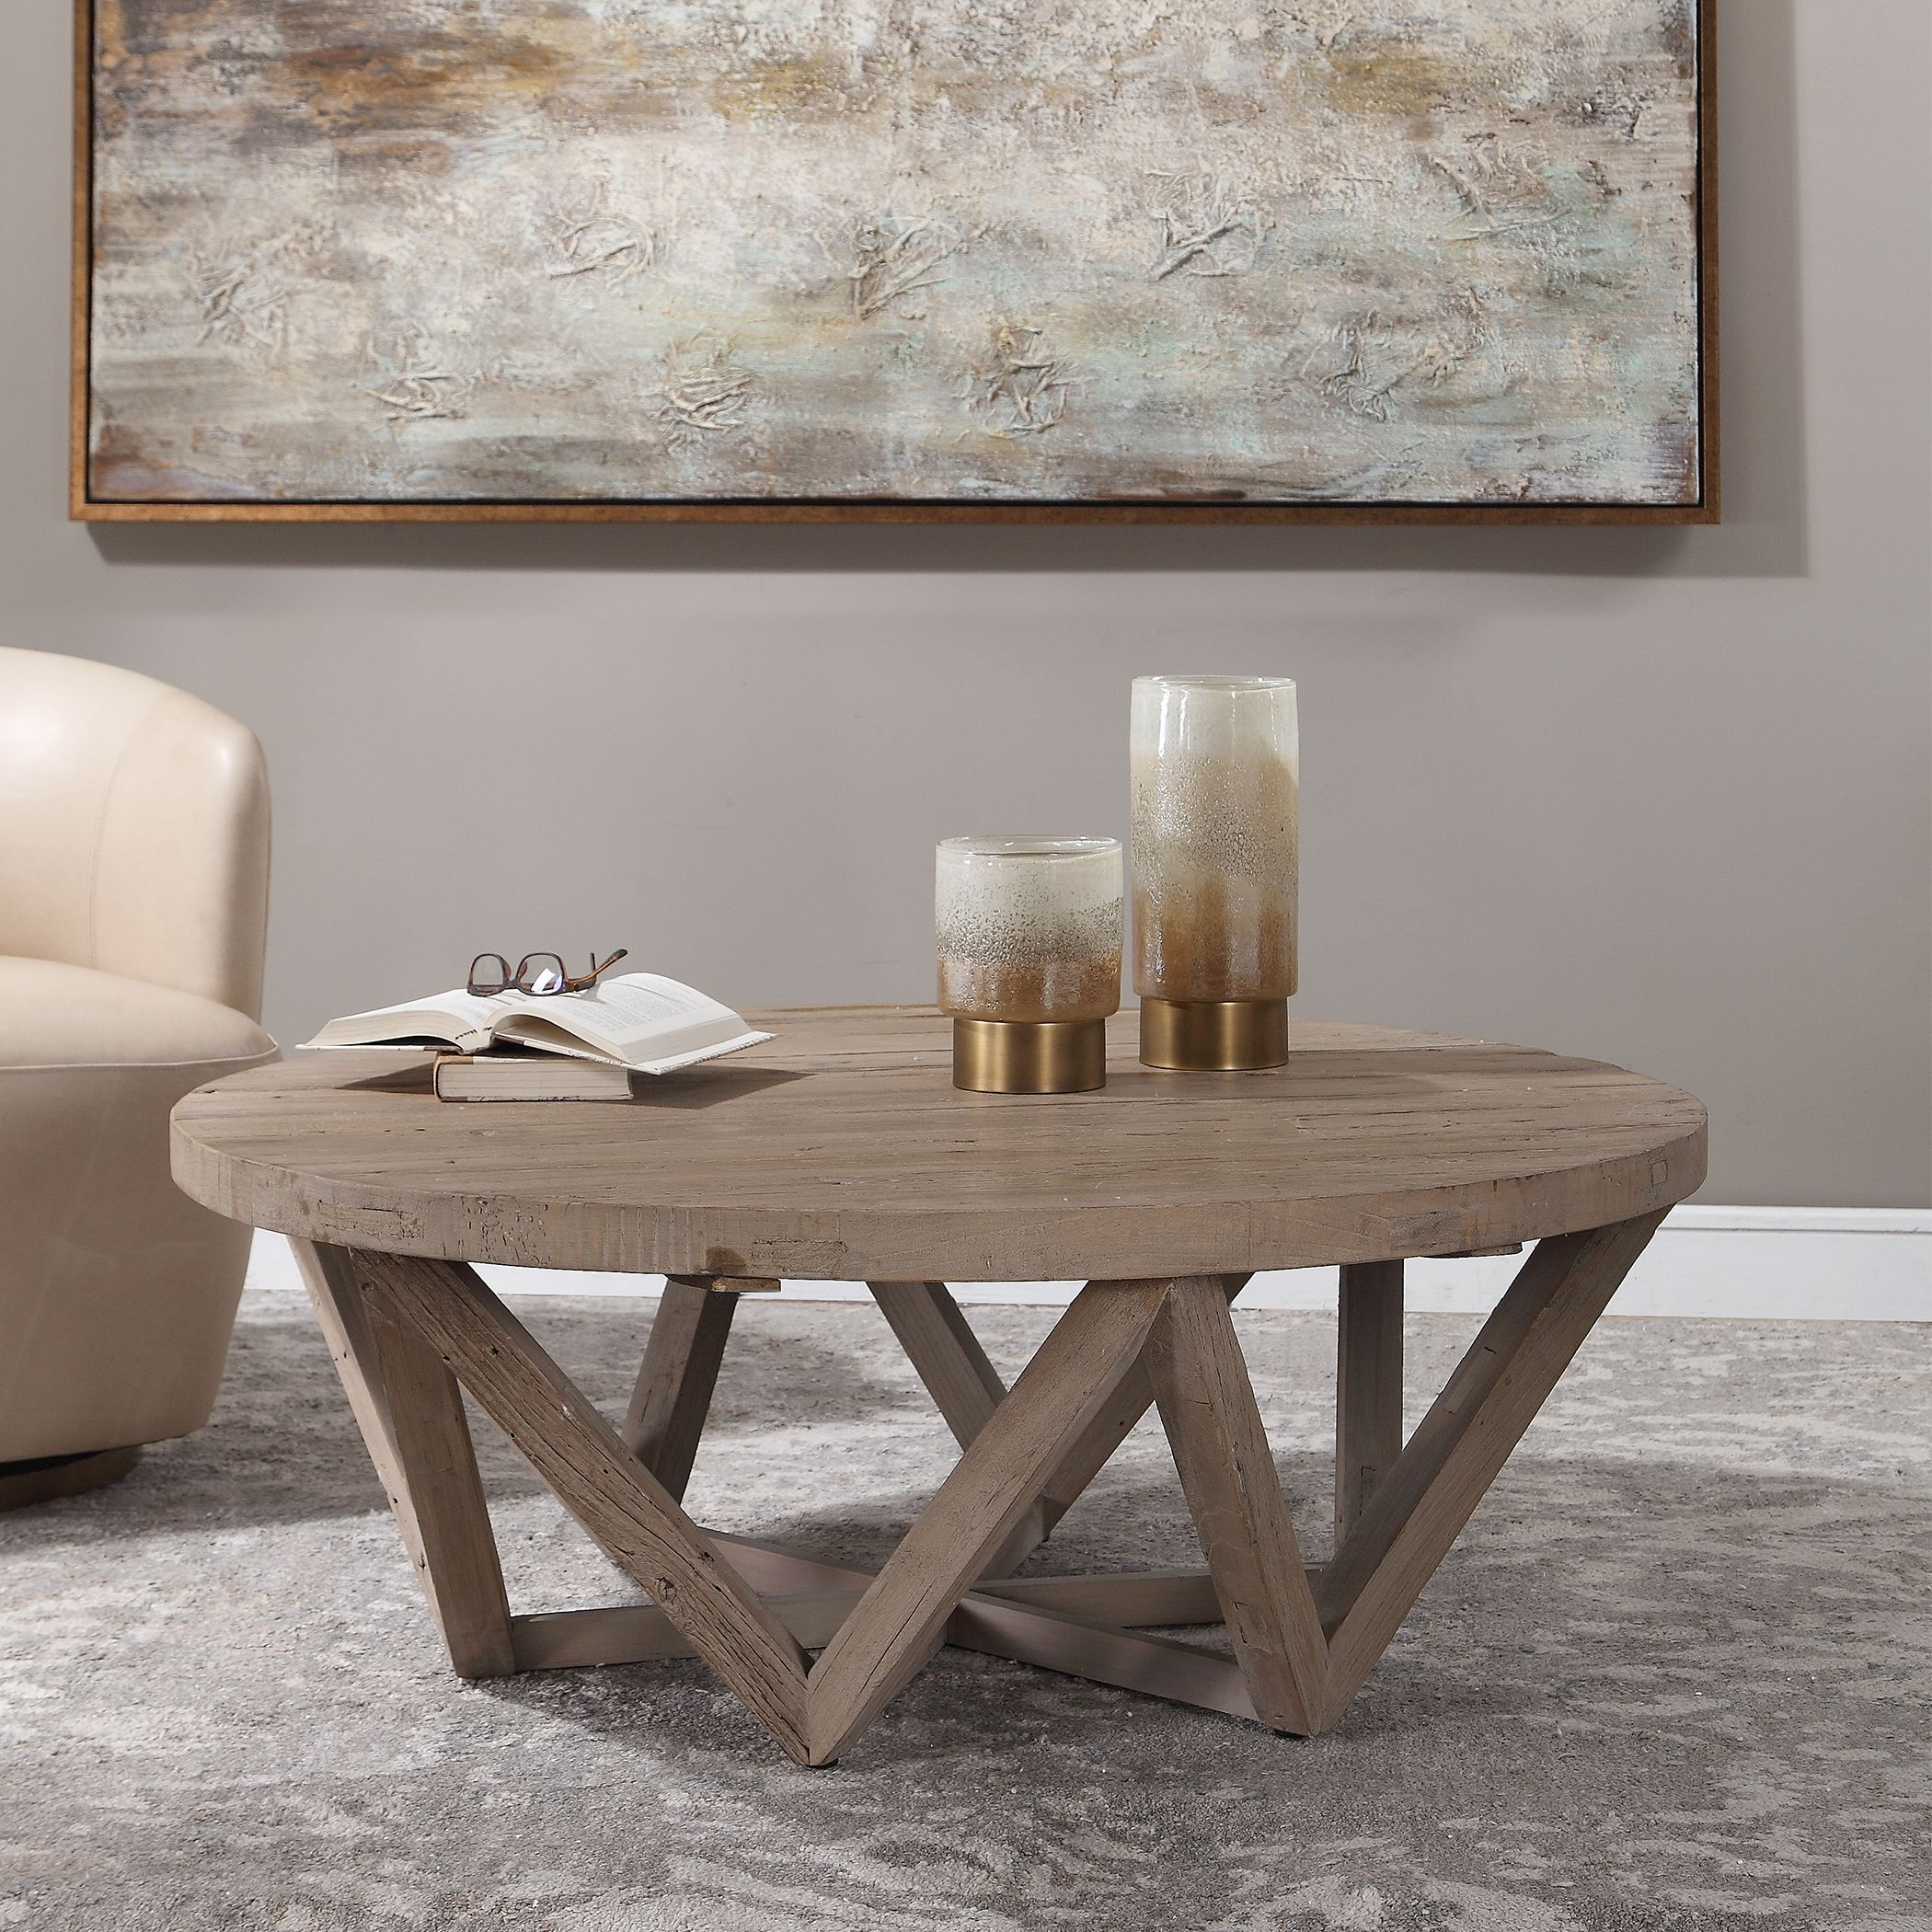 Uttermost Kendry Reclaimed Wood Coffee Table Round Round Wood Coffee Table Reclaimed Wood Coffee Table Round Coffee Table [ 2100 x 2100 Pixel ]